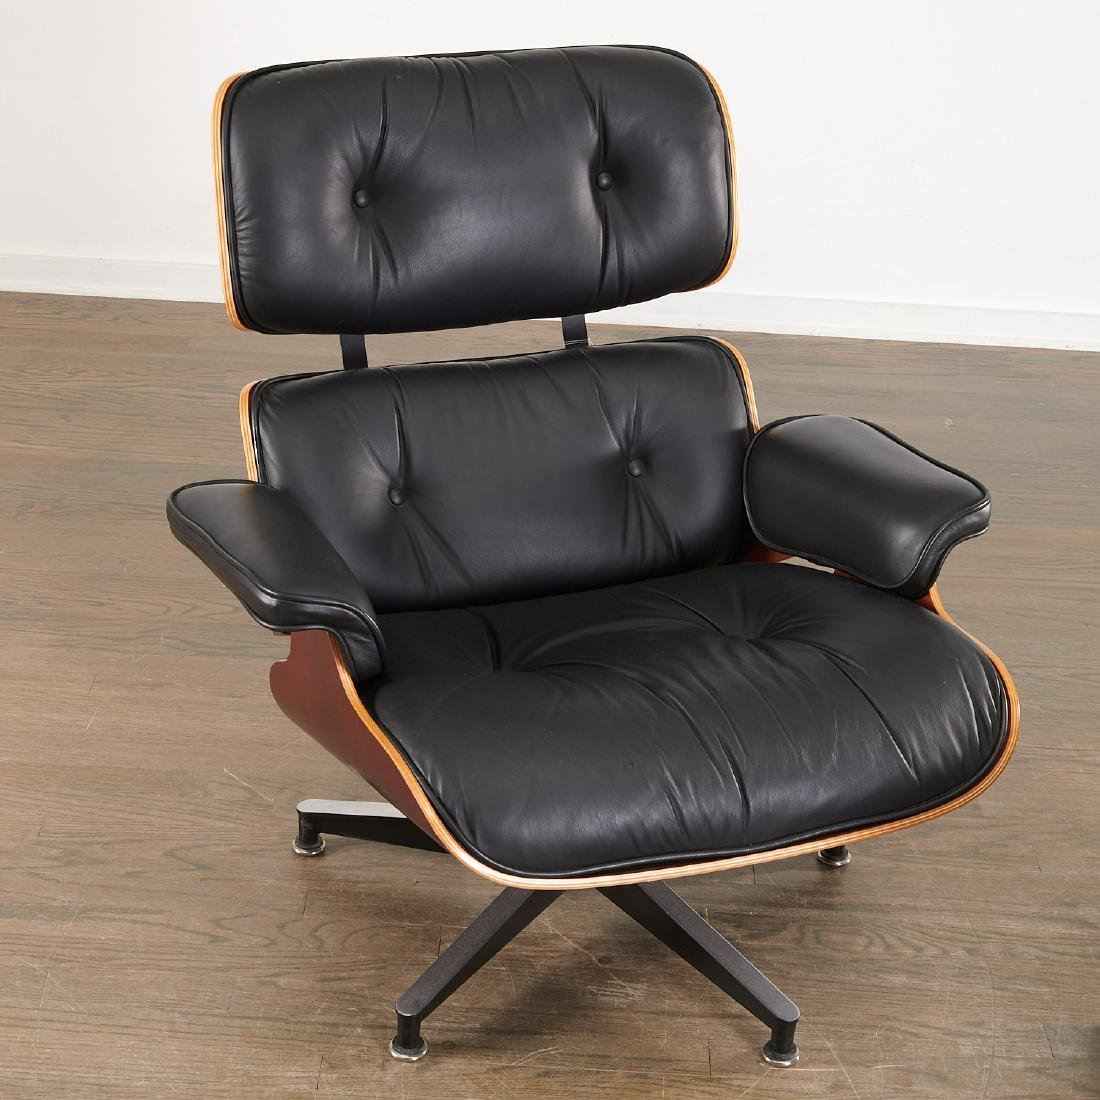 Charles and Ray Eames, Lounge chair and ottoman - 2